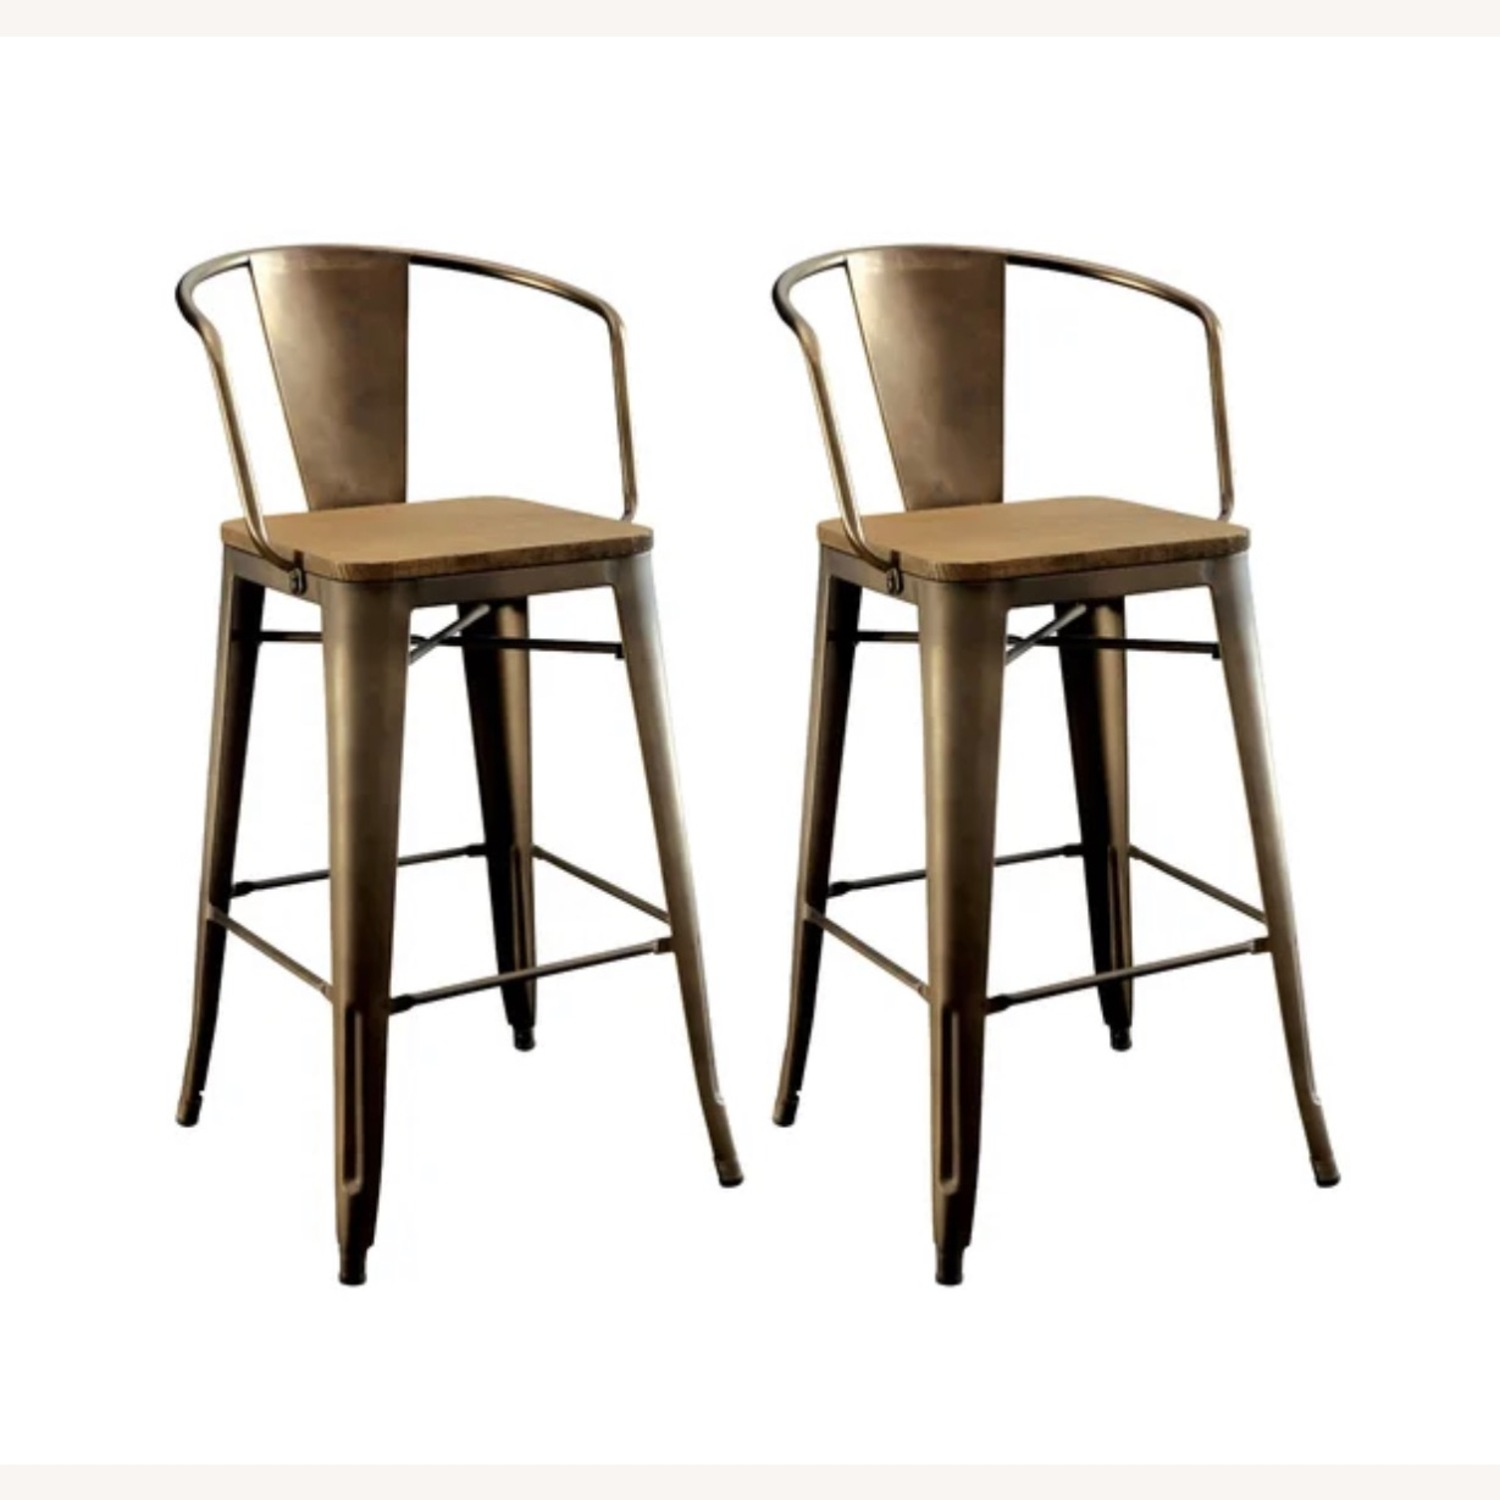 Wayfair Set of two Industrial Counter Stools - image-2